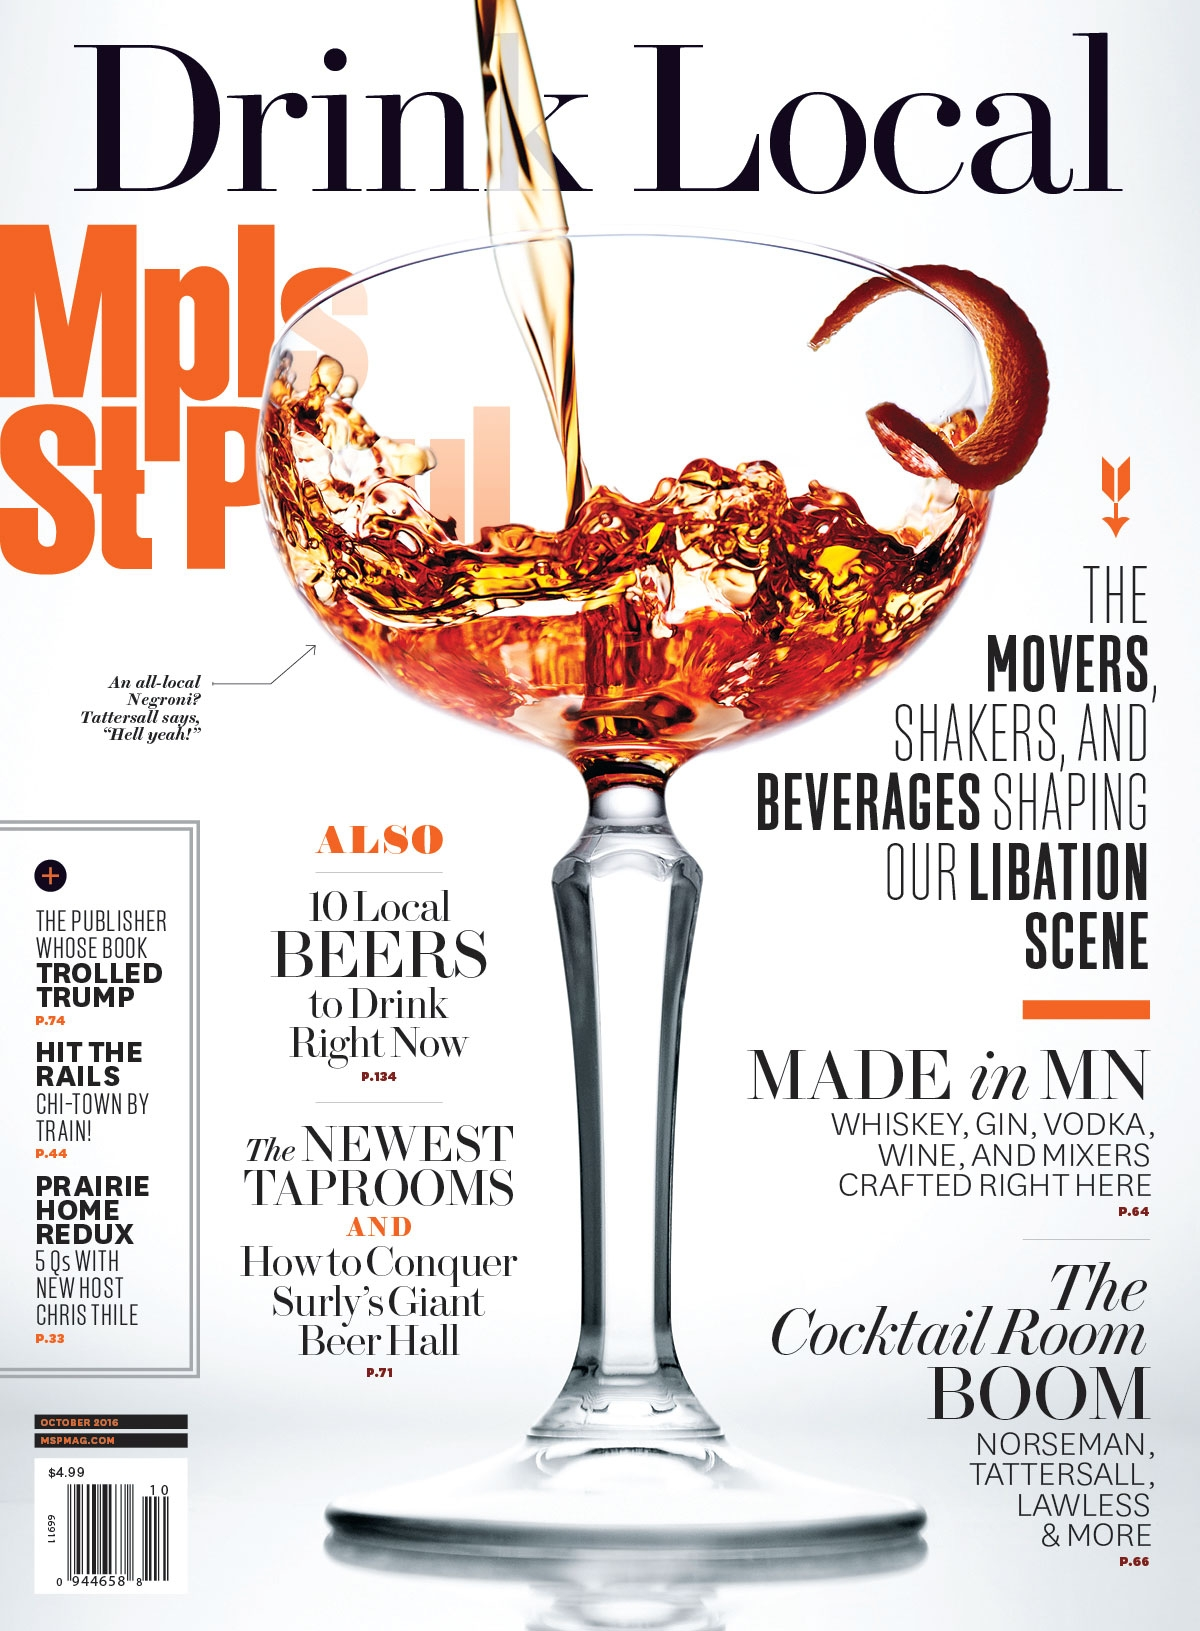 Mpls.St.Paul Magazine full